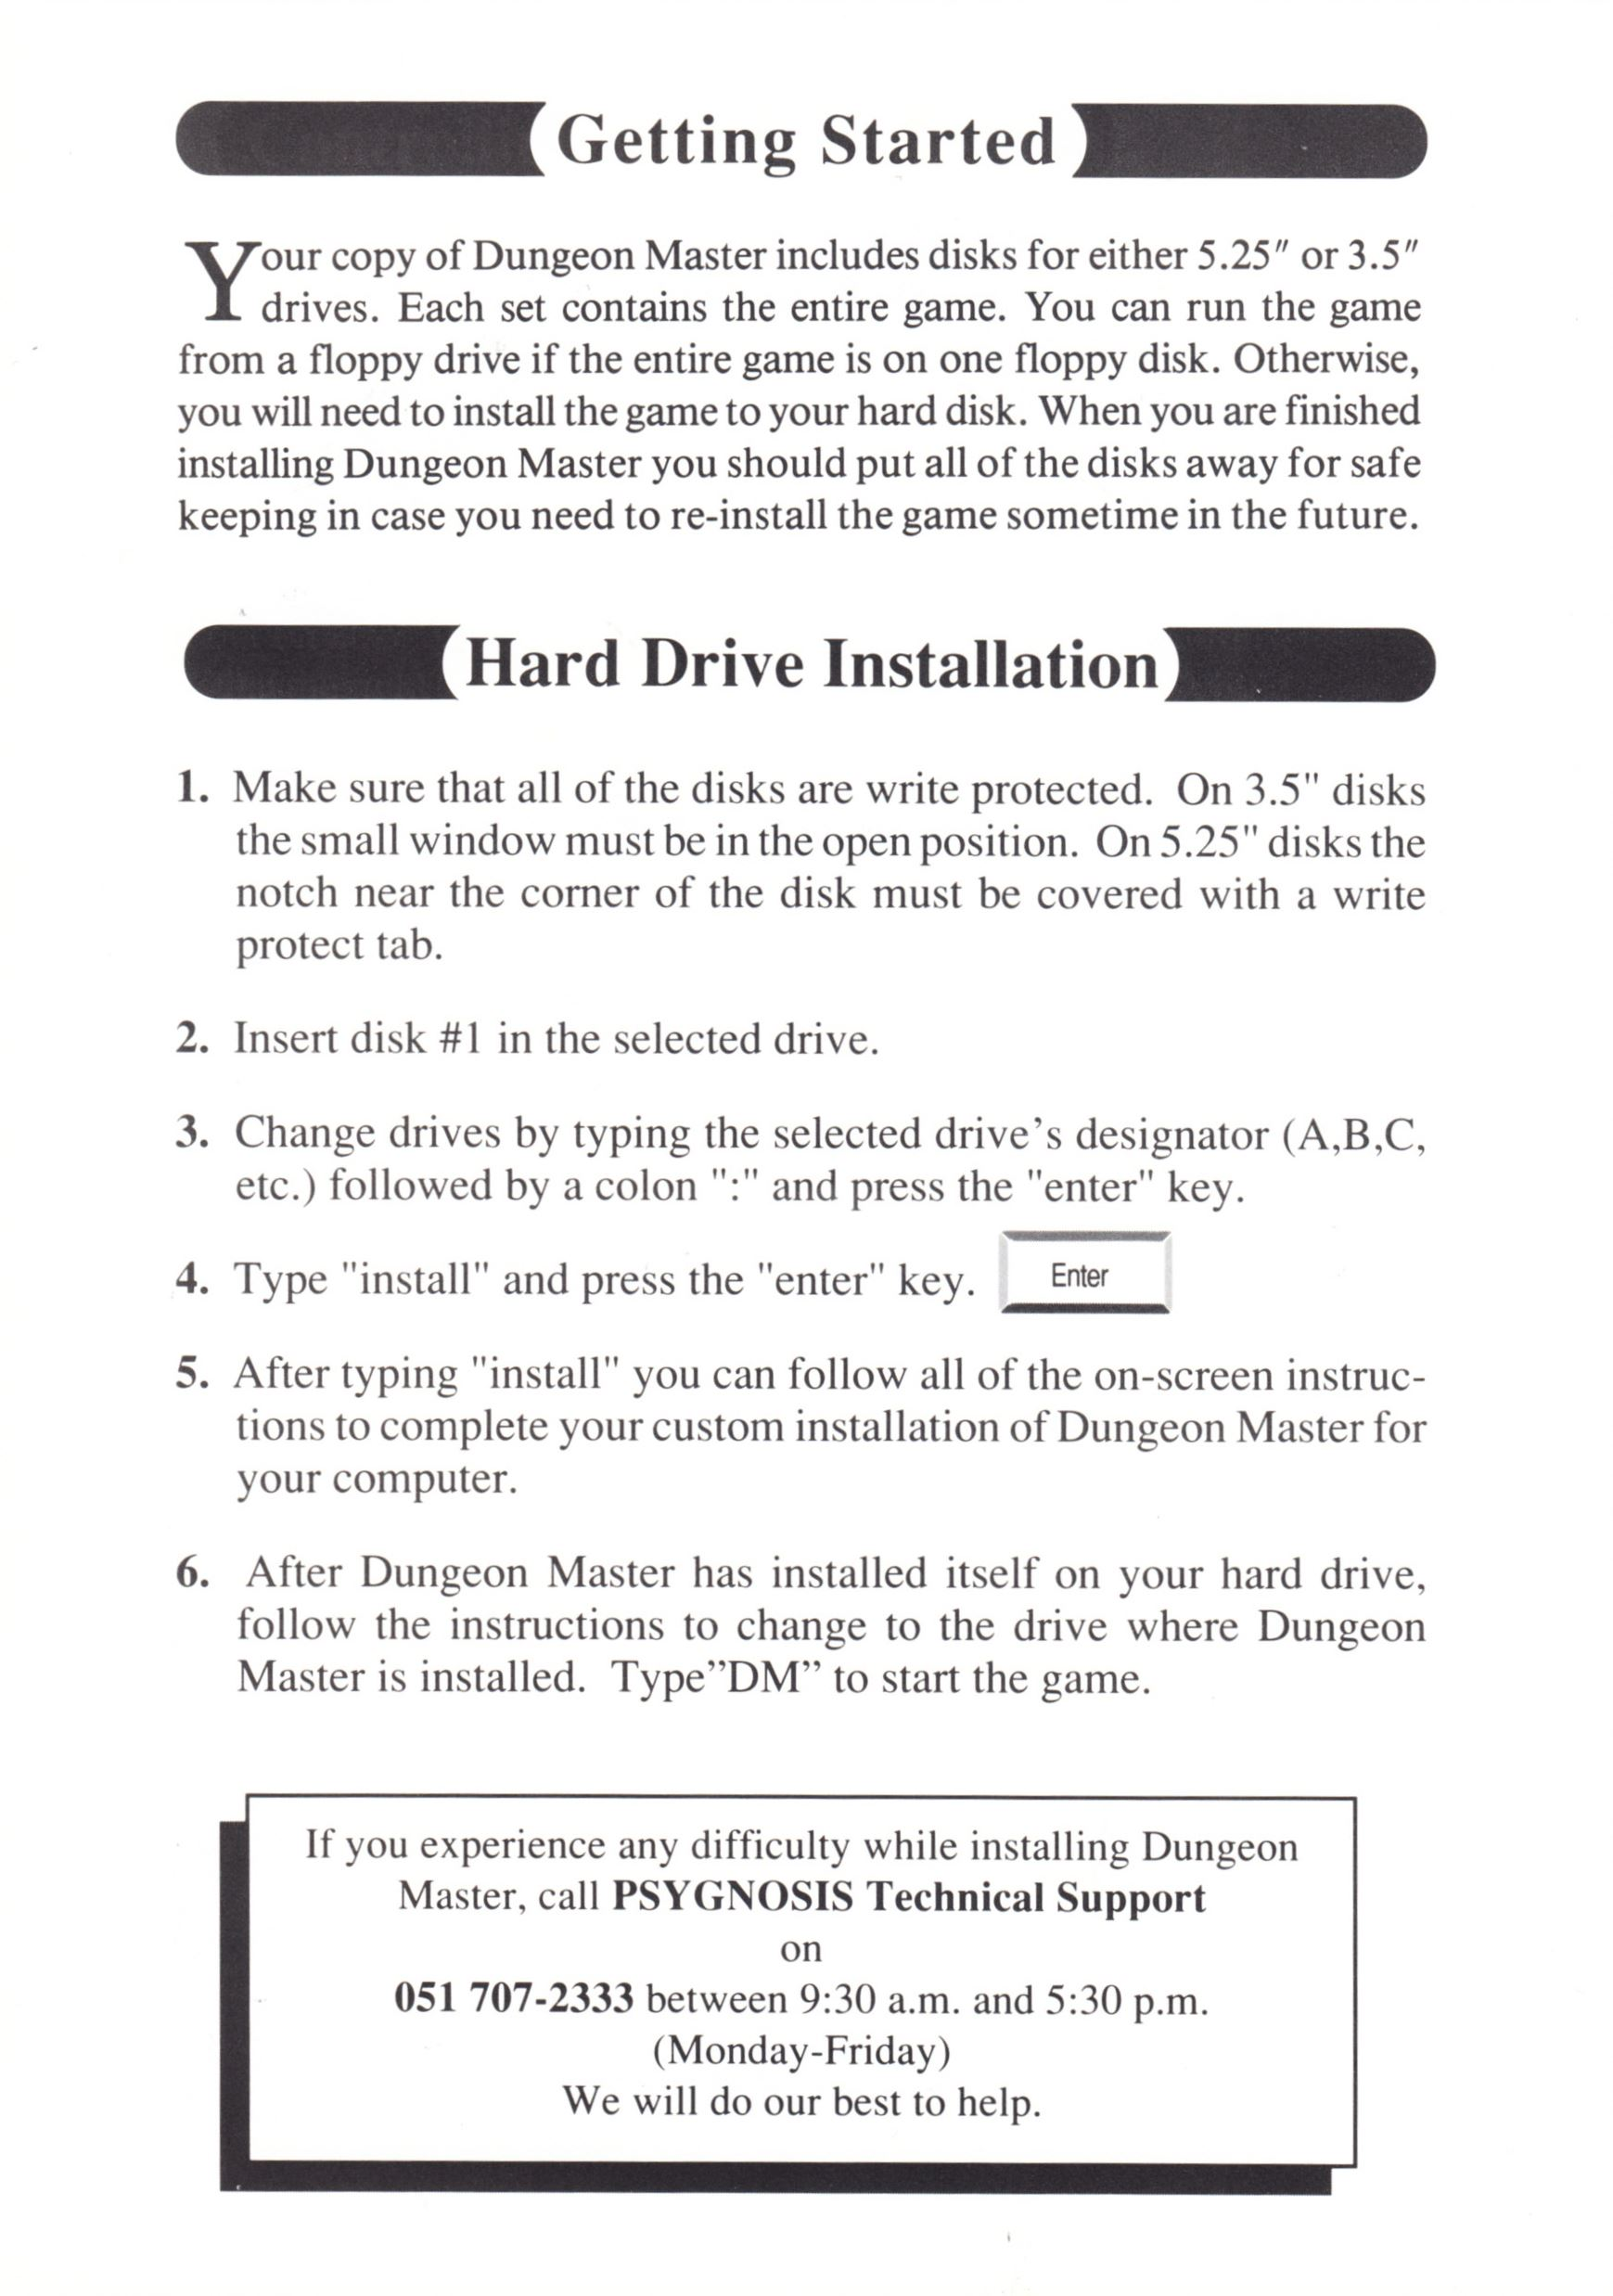 Game - Dungeon Master - UK - PC - Psygnosis - Quick Start Guide - Page 002 - Scan